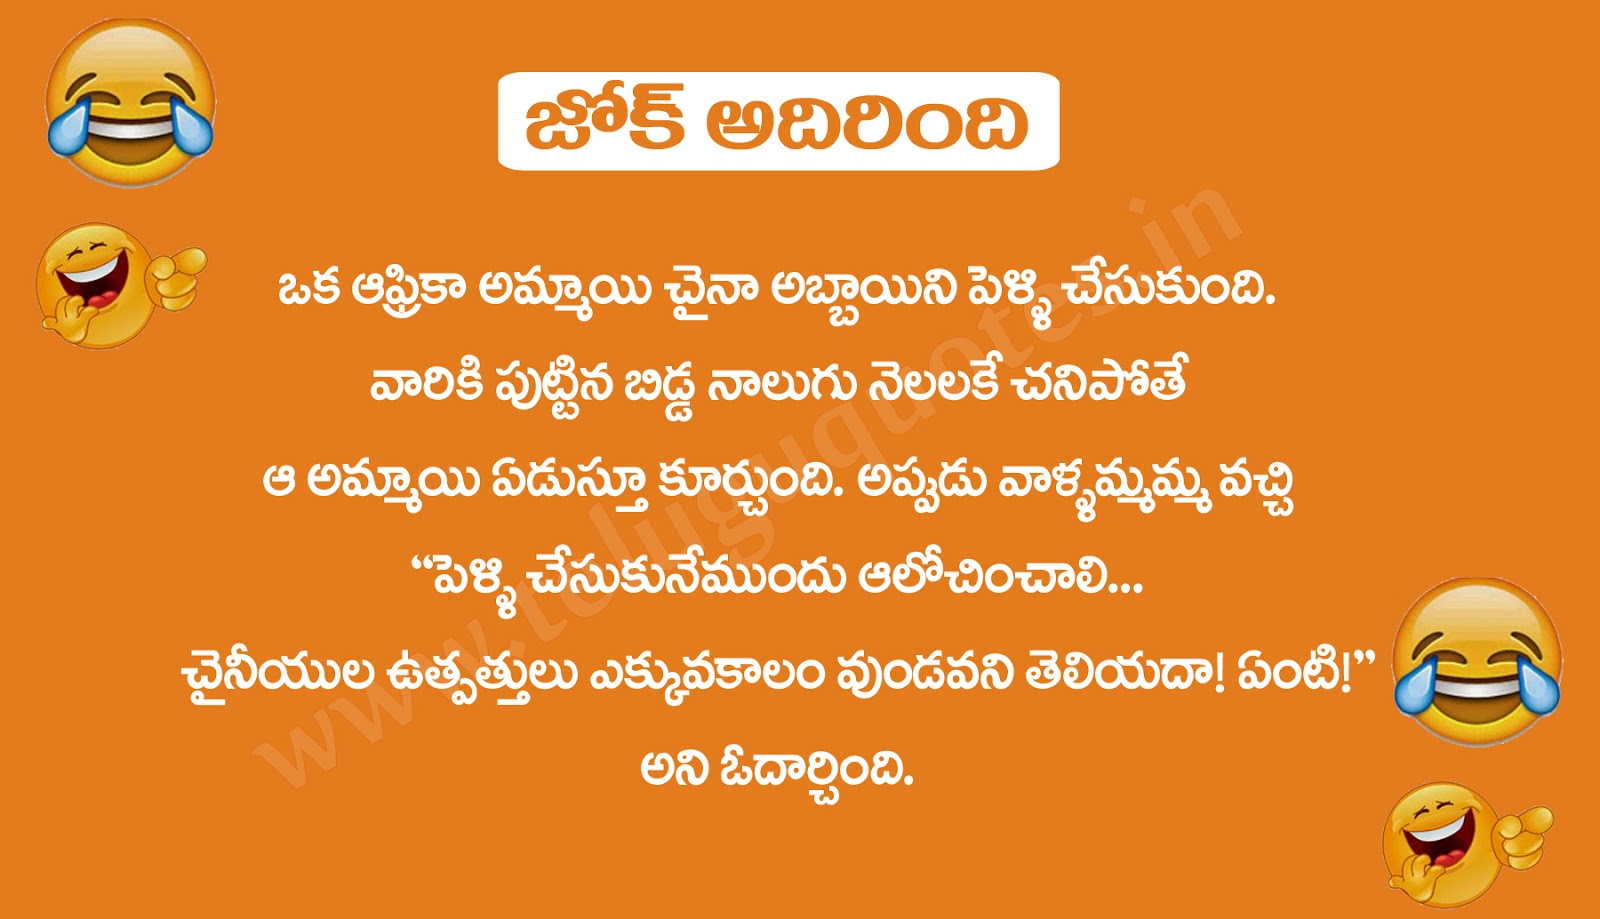 Telugu Funny Messages Jokes